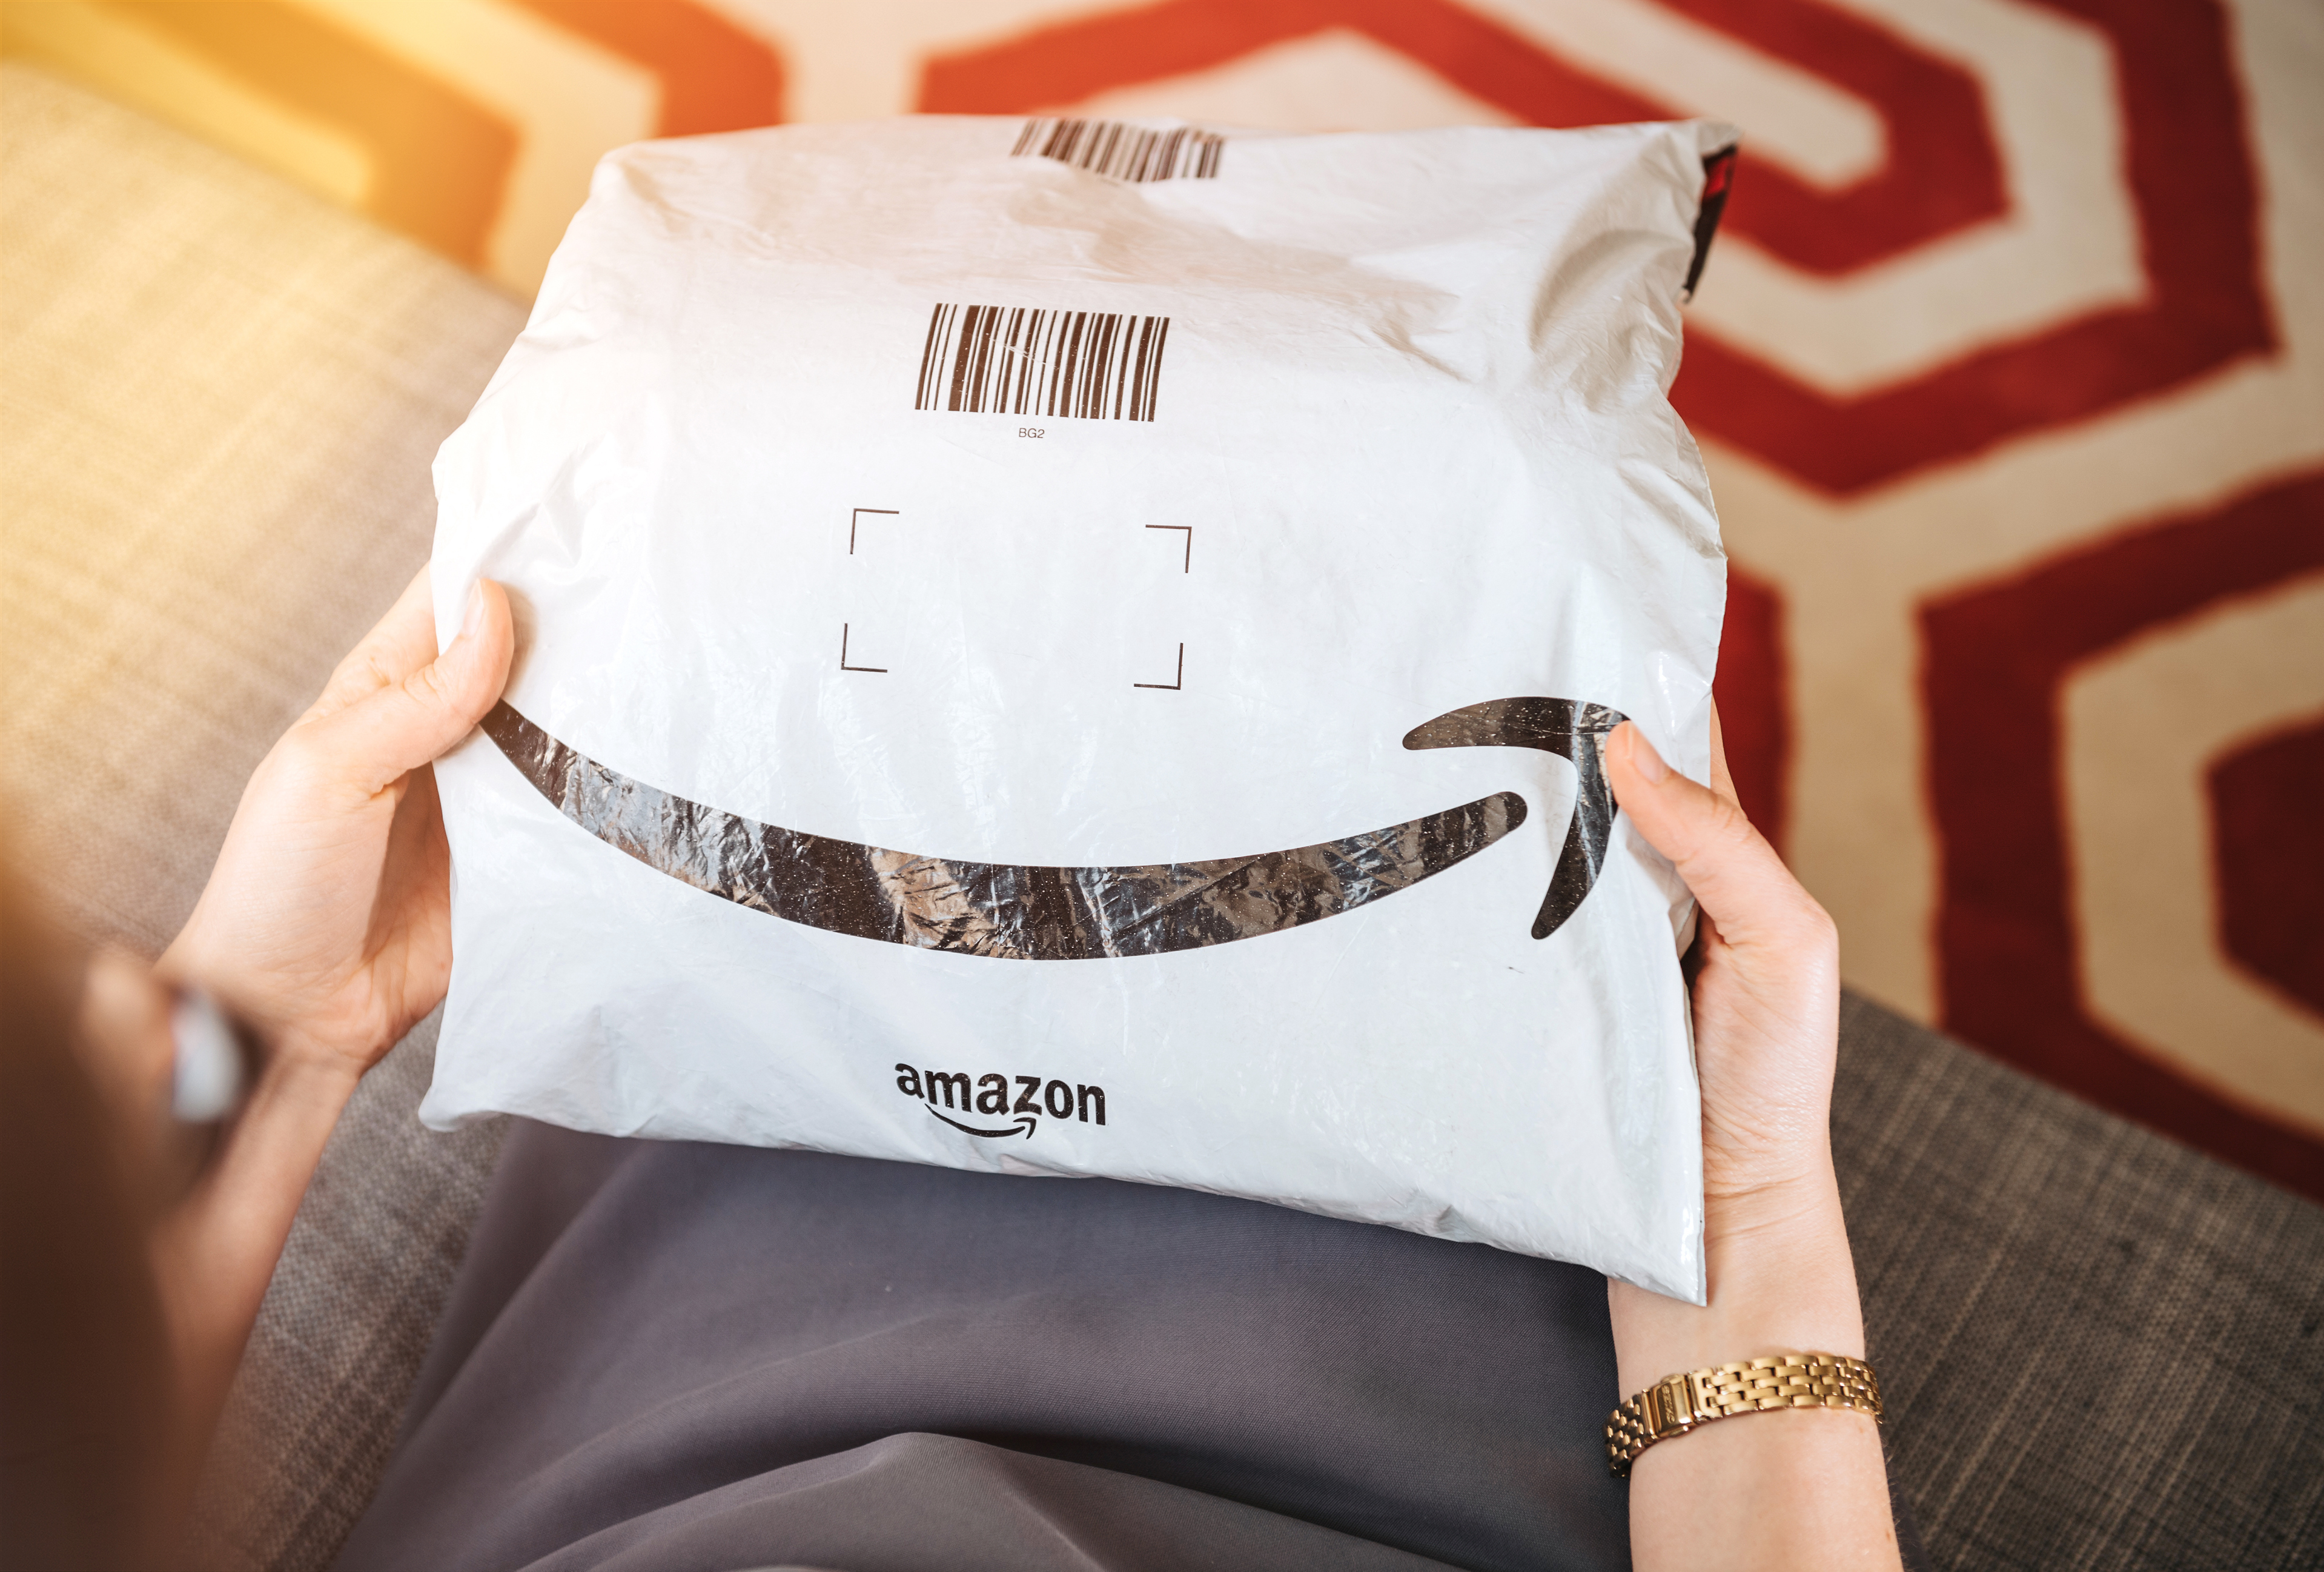 Amazon soft package